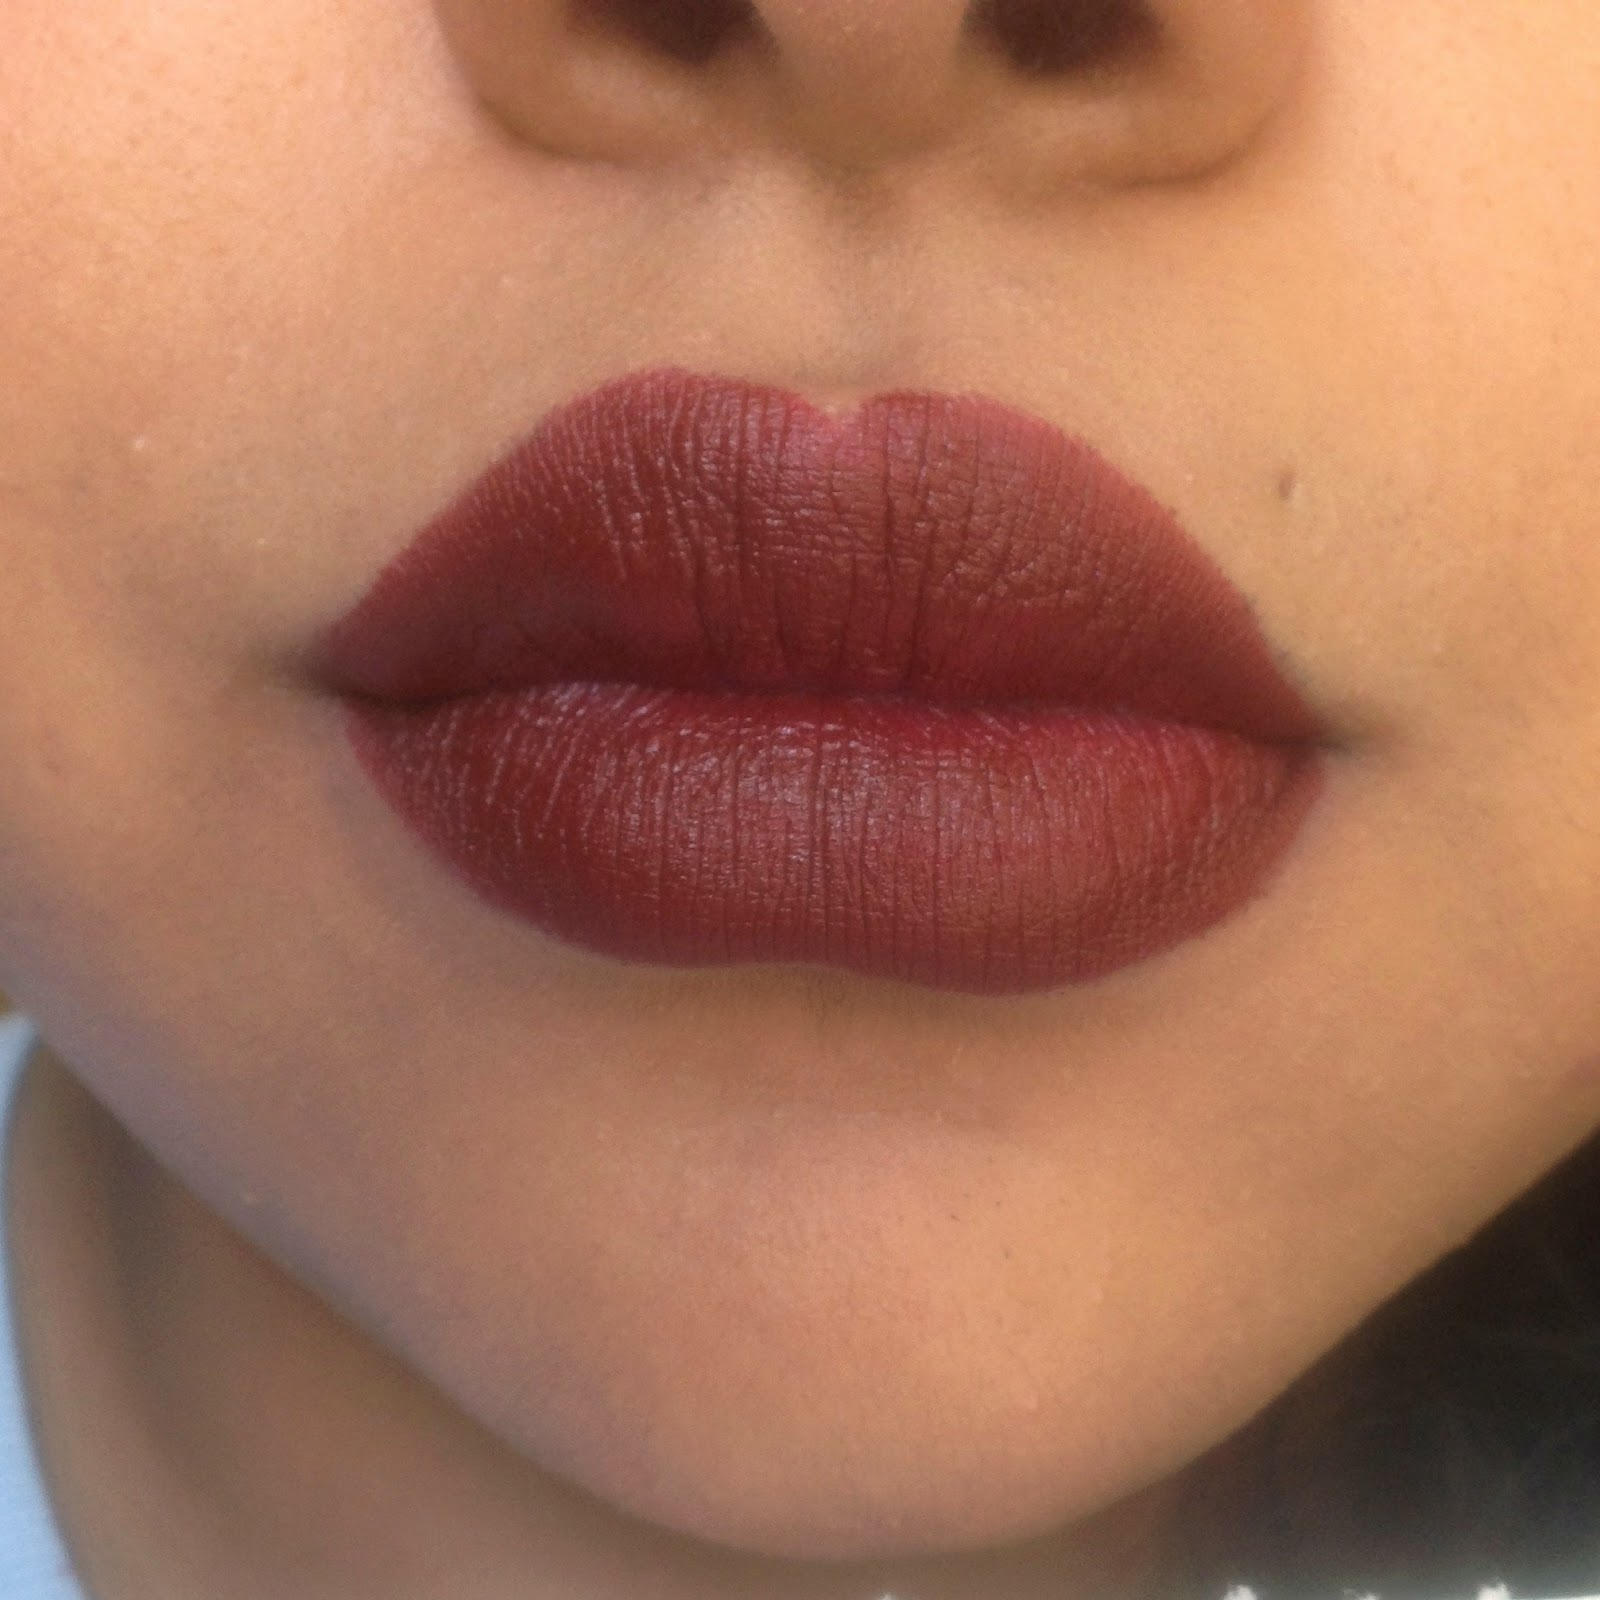 Populaire Lets Get Carried Away: Lipstick Swatches and Mini Review Pt. 1 ZL43